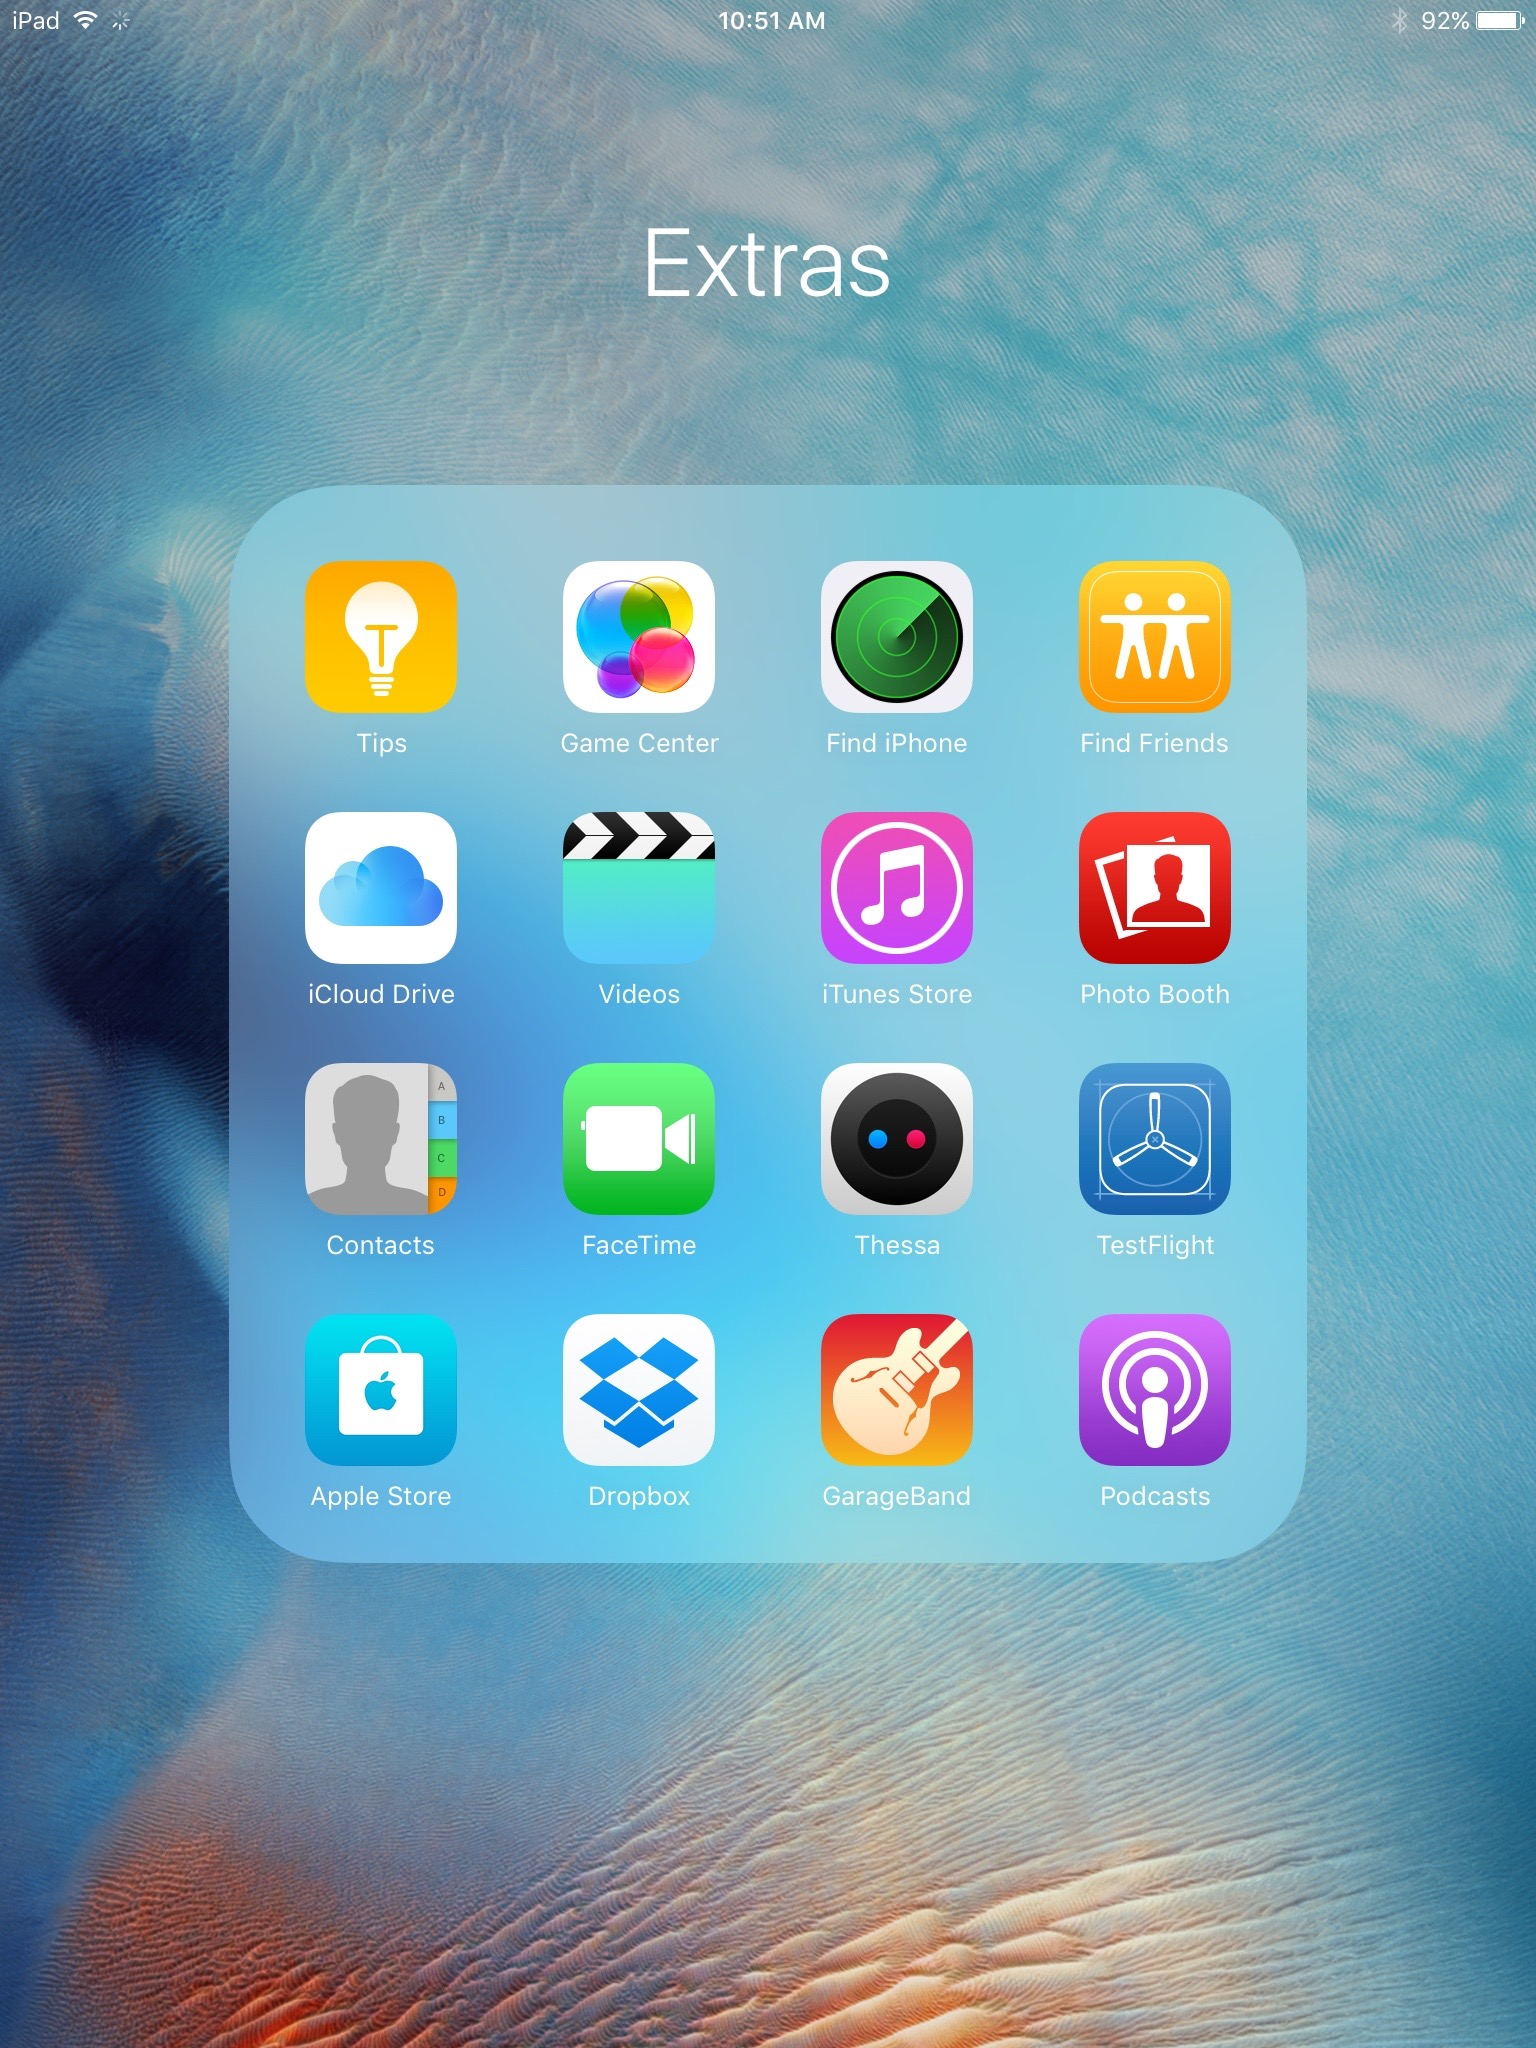 iPad 16 apps folders iOS 9